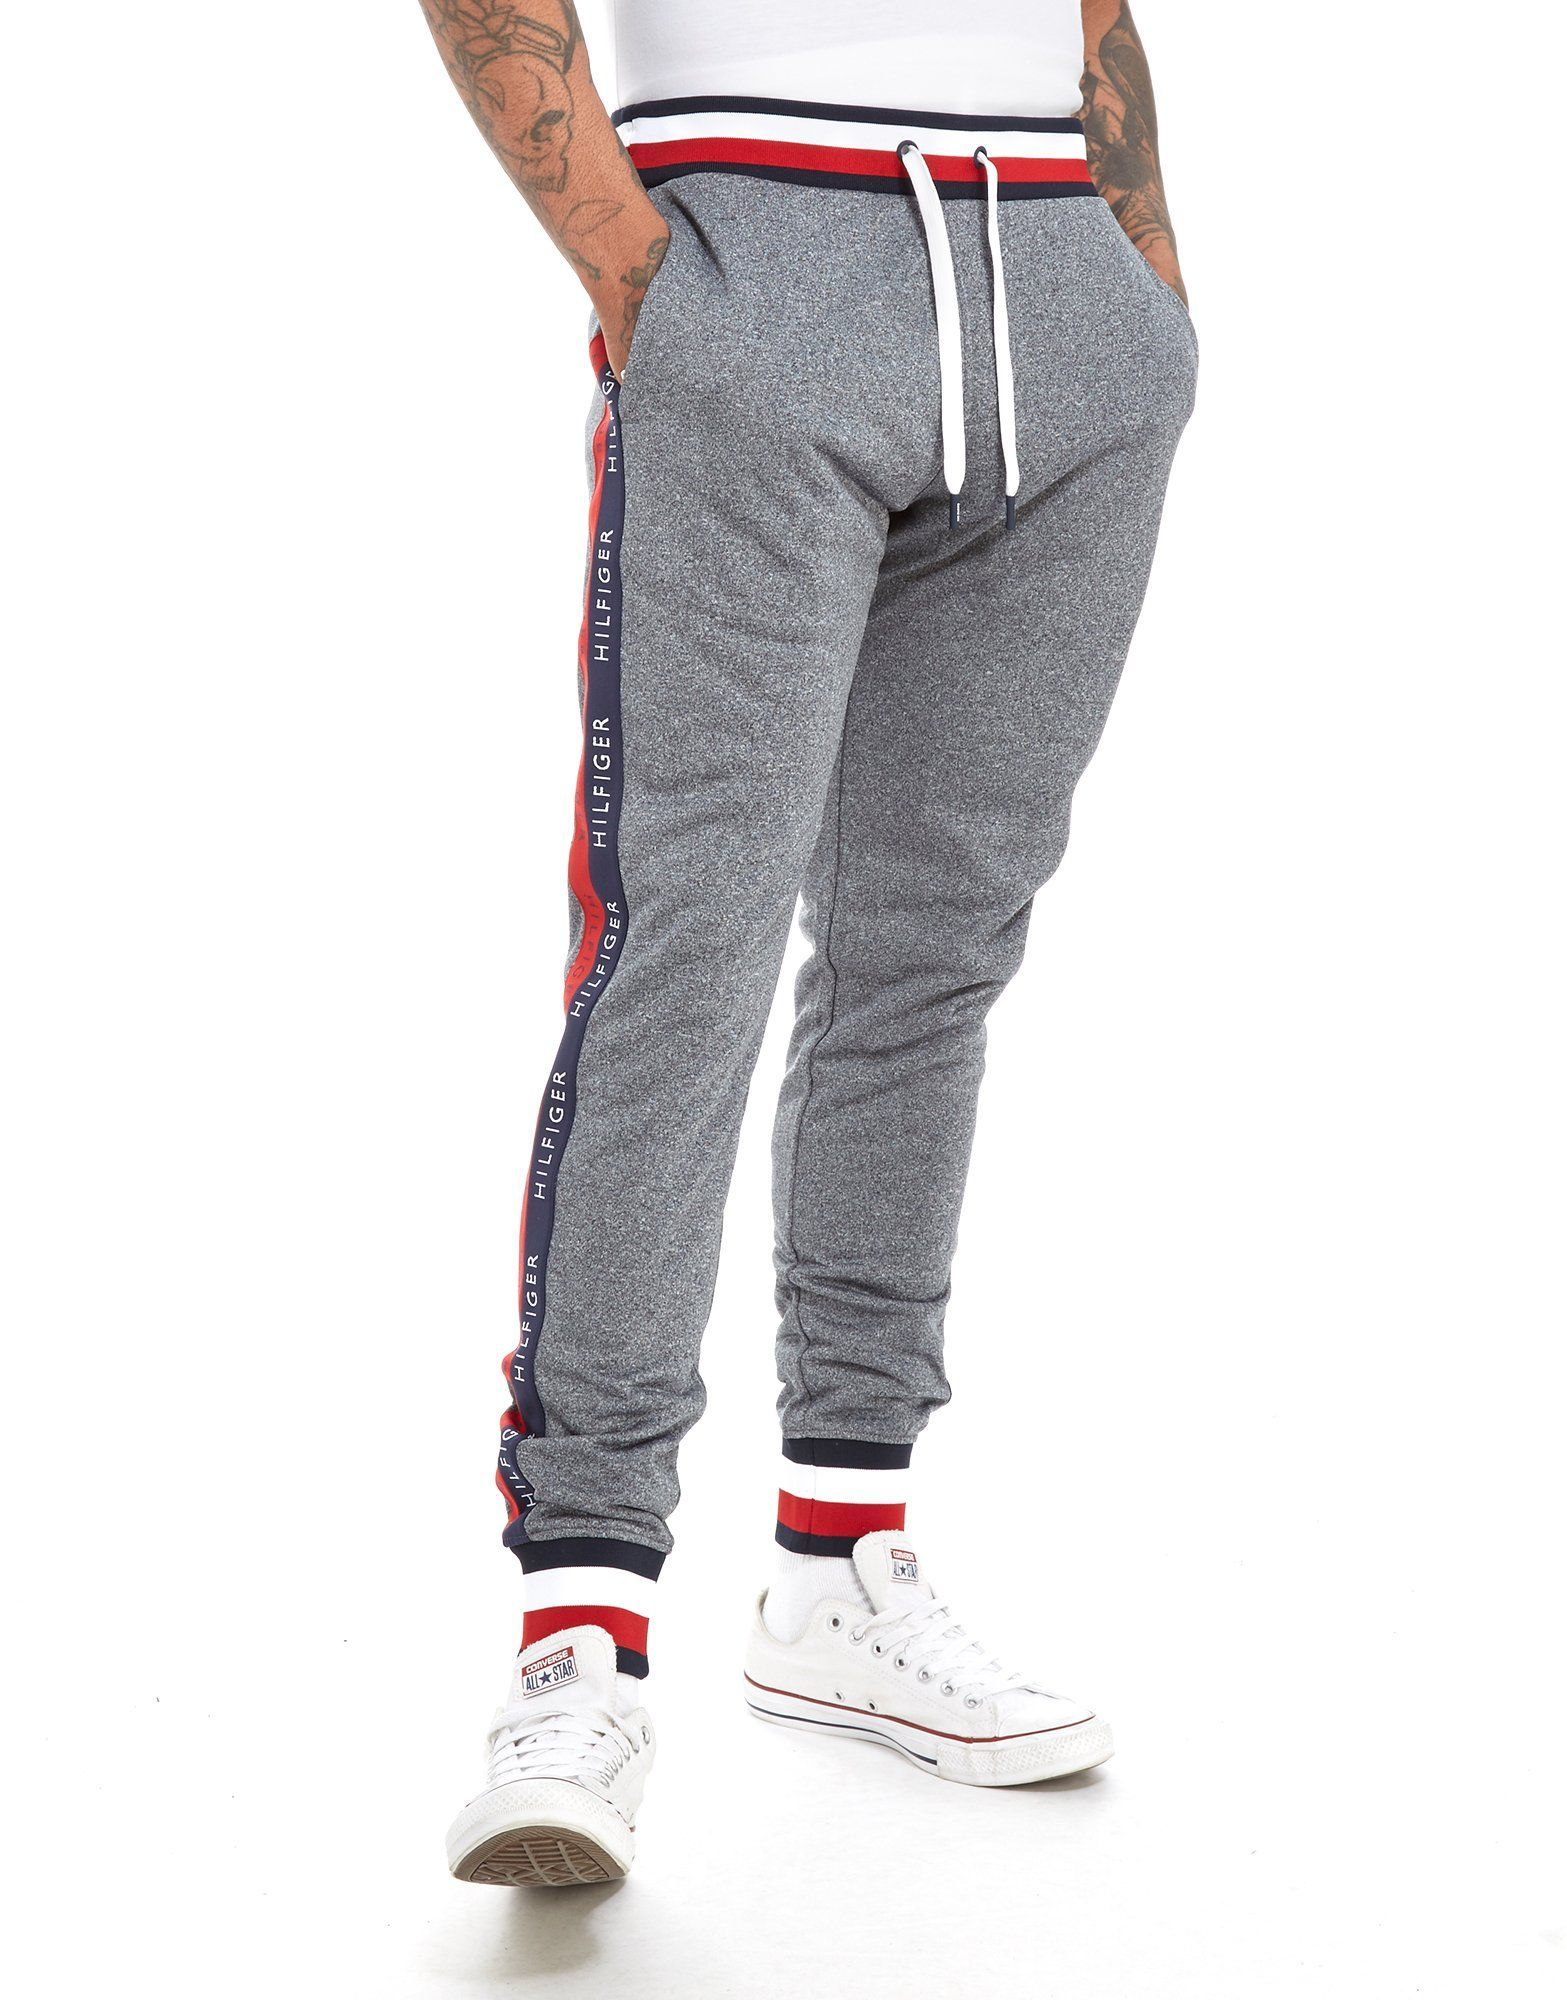 f52c05a4 Tommy Hilfiger Tech Terry Tape Pants - Shop online for Tommy Hilfiger Tech  Terry Tape Pants with JD Sports, the UK's leading sports fashion retailer.